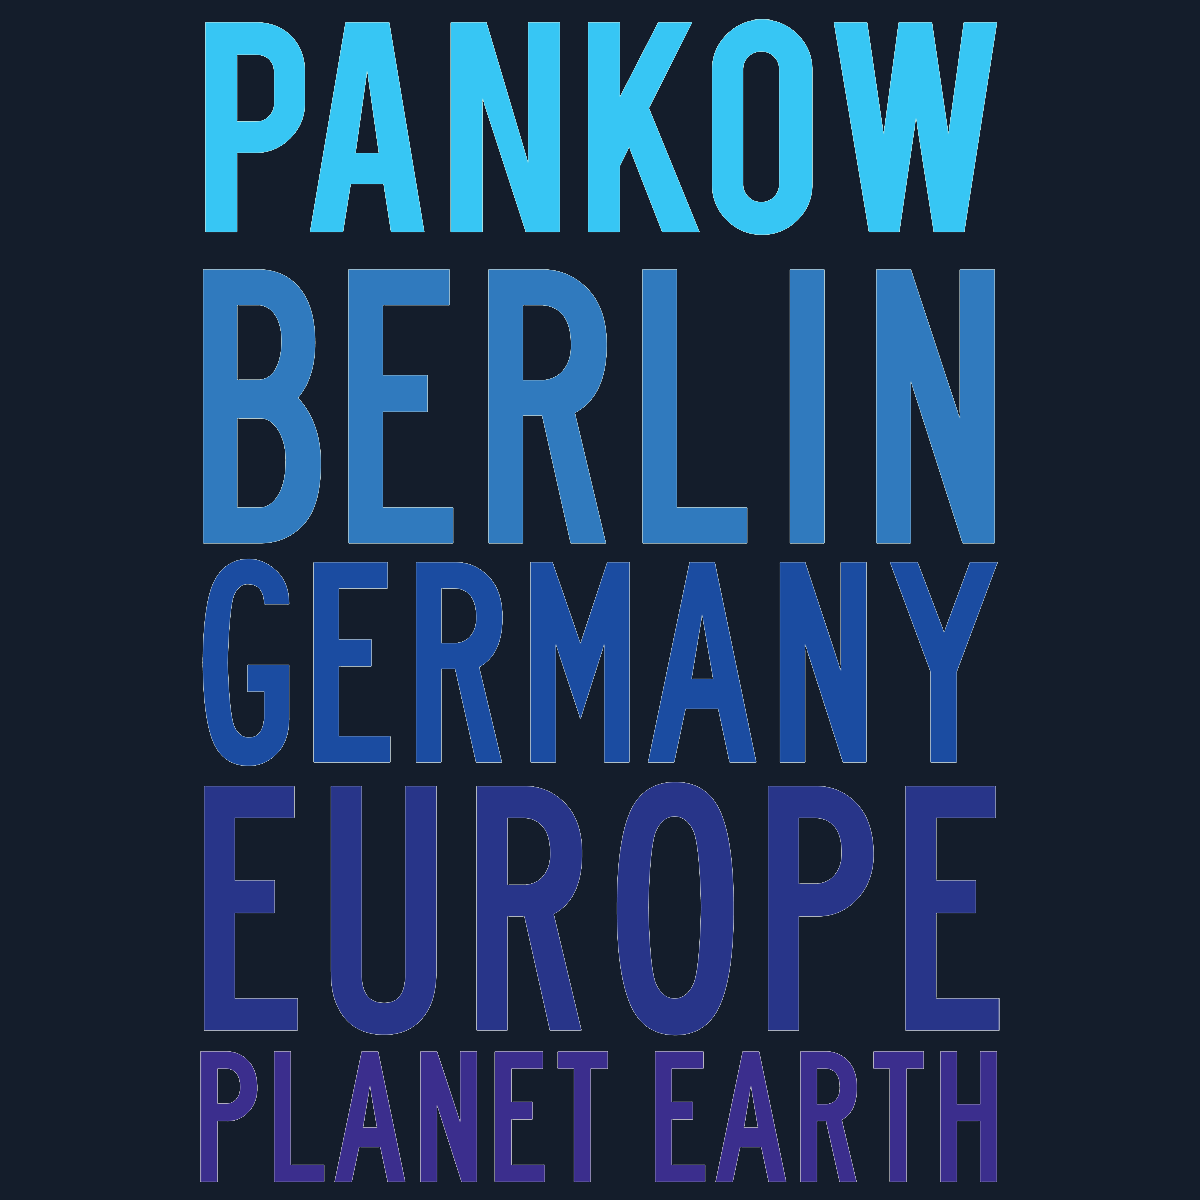 Pankow Planet Earth